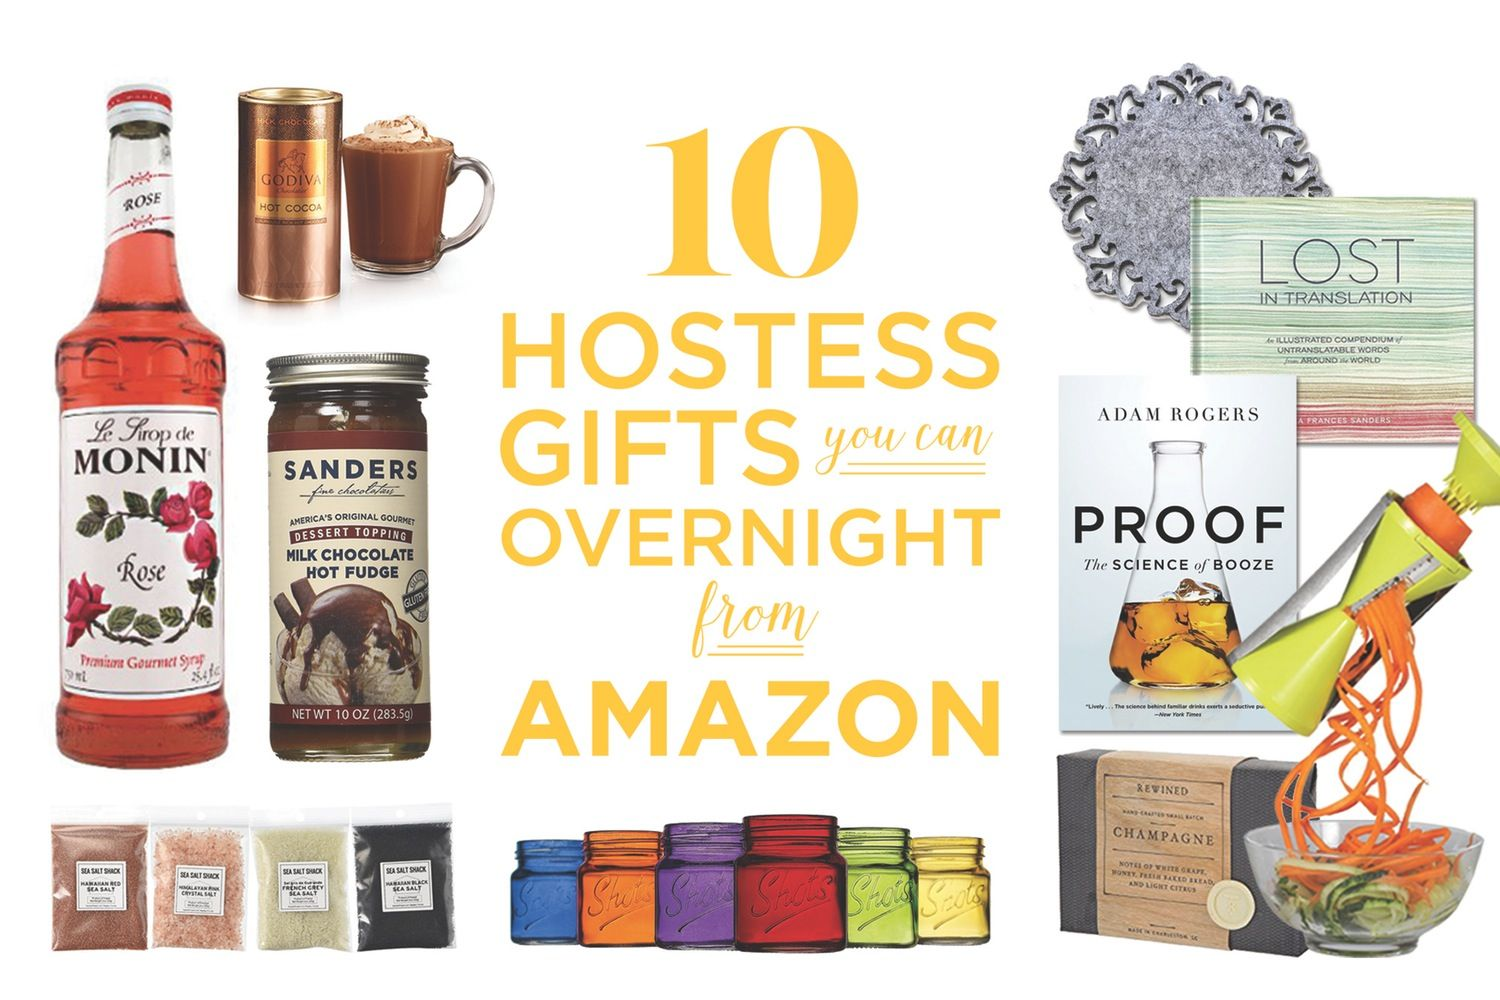 10 Hostess Gifts You Can Overnight From Amazon For 15 Or Less Thanksgiving Shopping